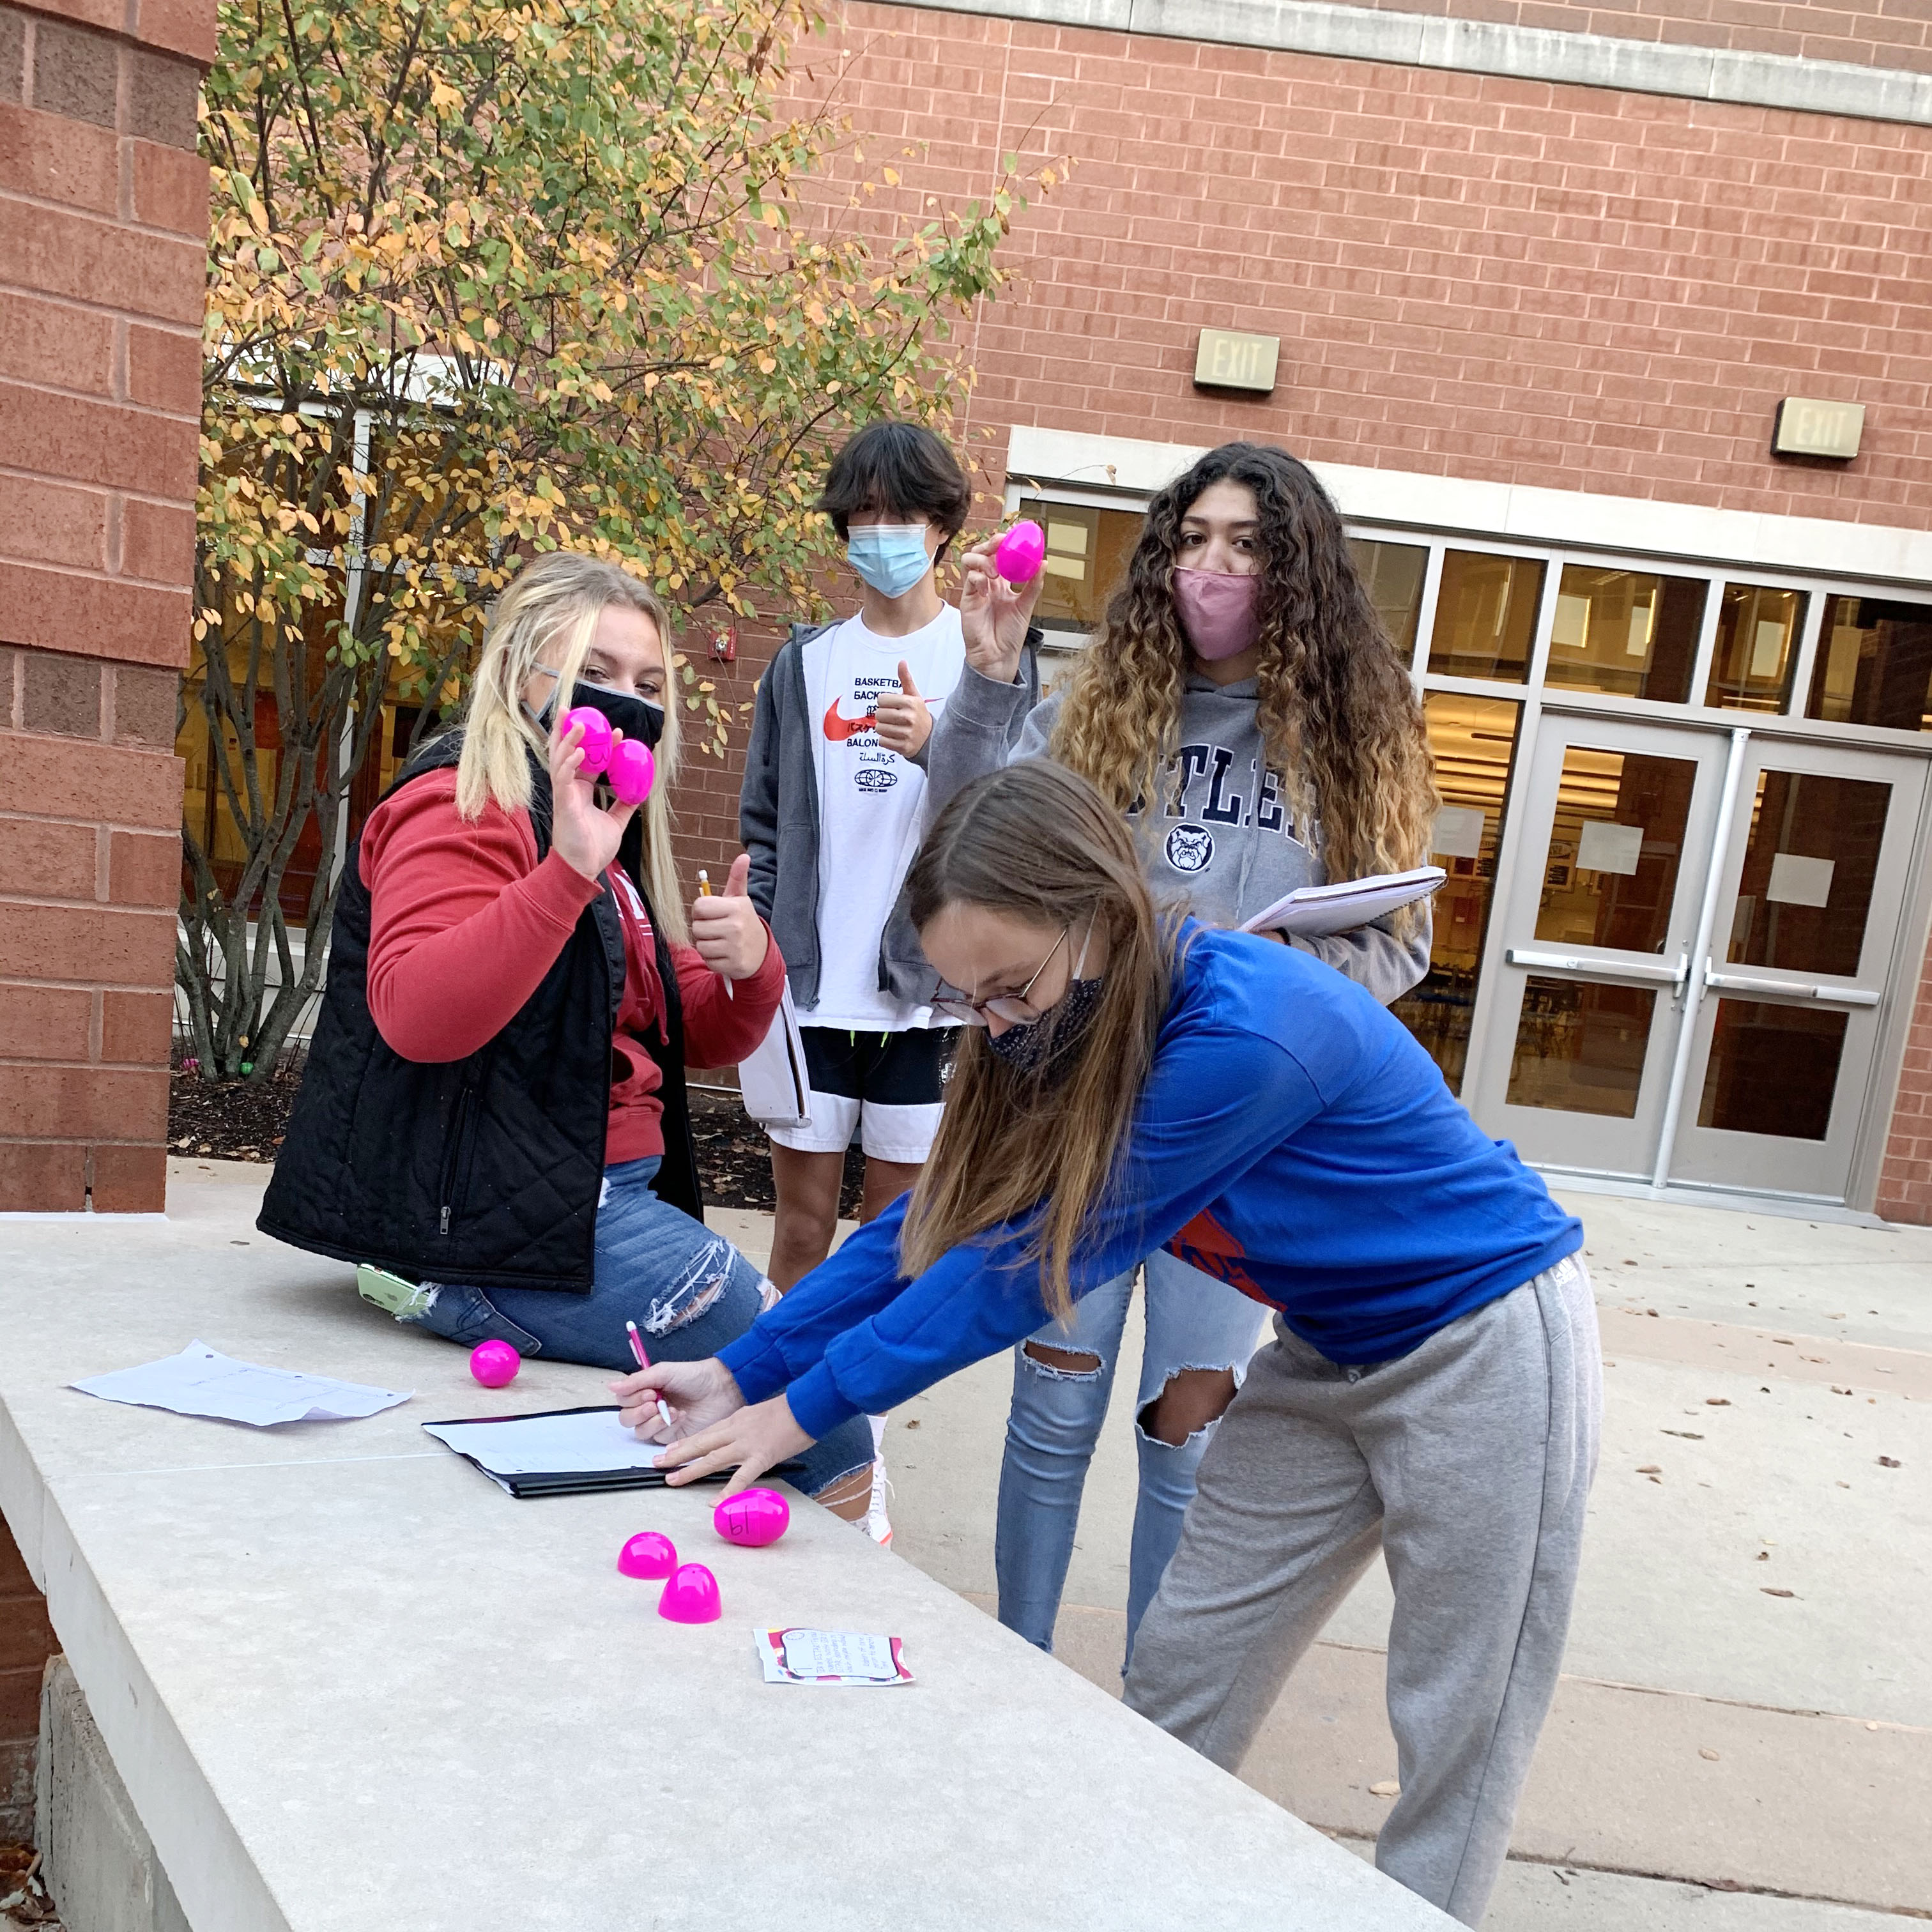 PHS students (and teachers) take advantage of outdoor spaces for class projects.